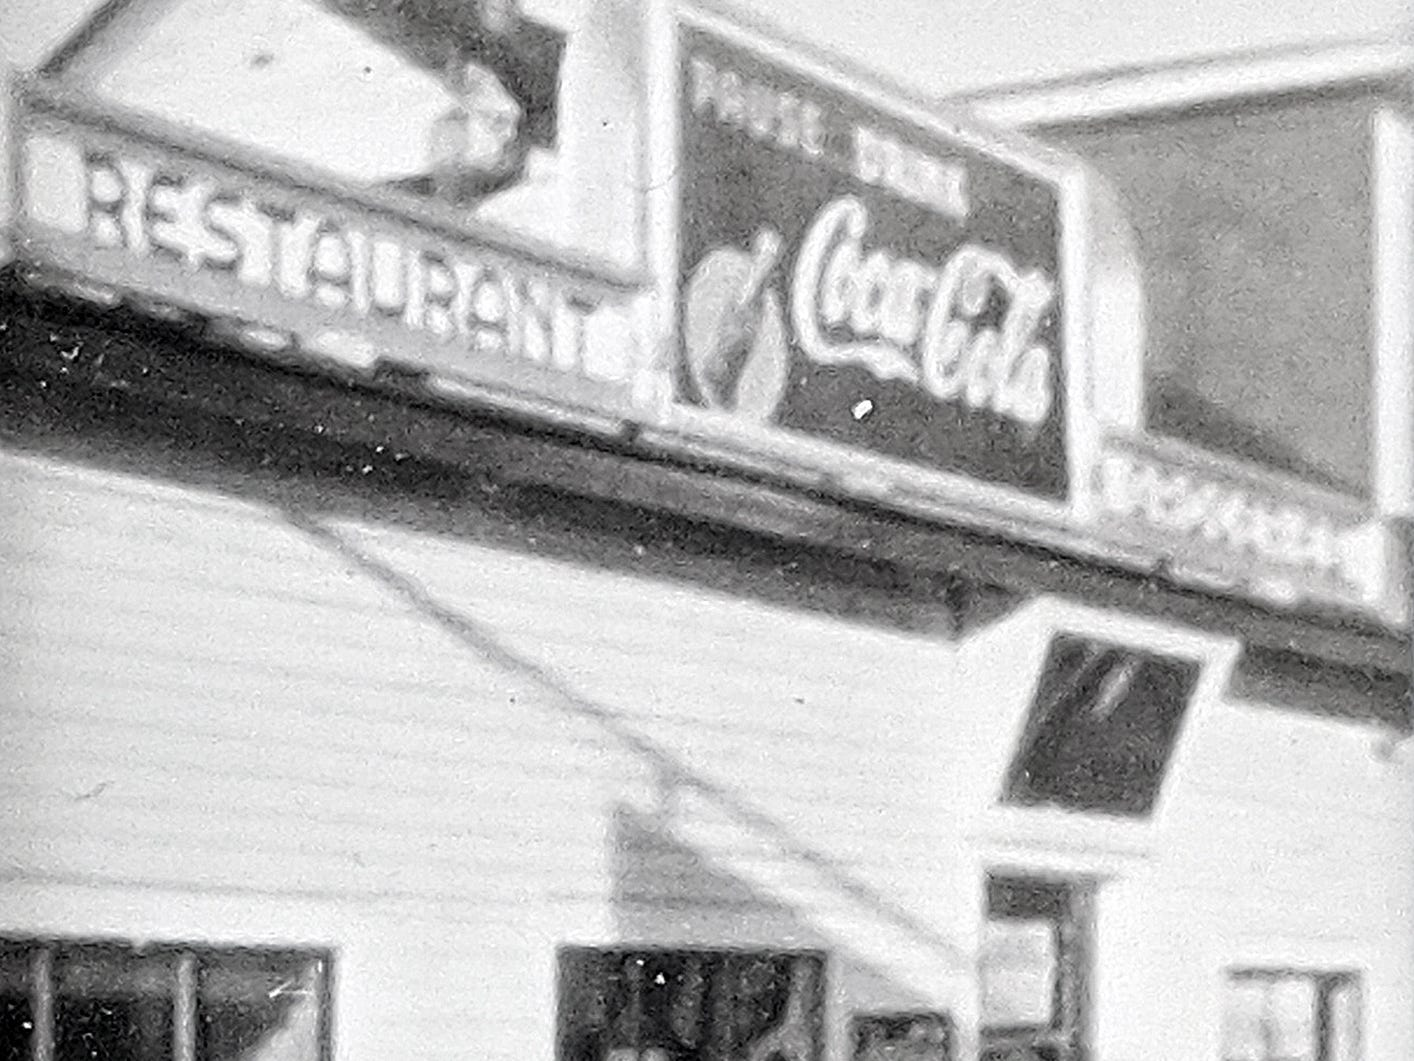 This was Smith's truck stop and diner in Jacobus as it looked in 1940.